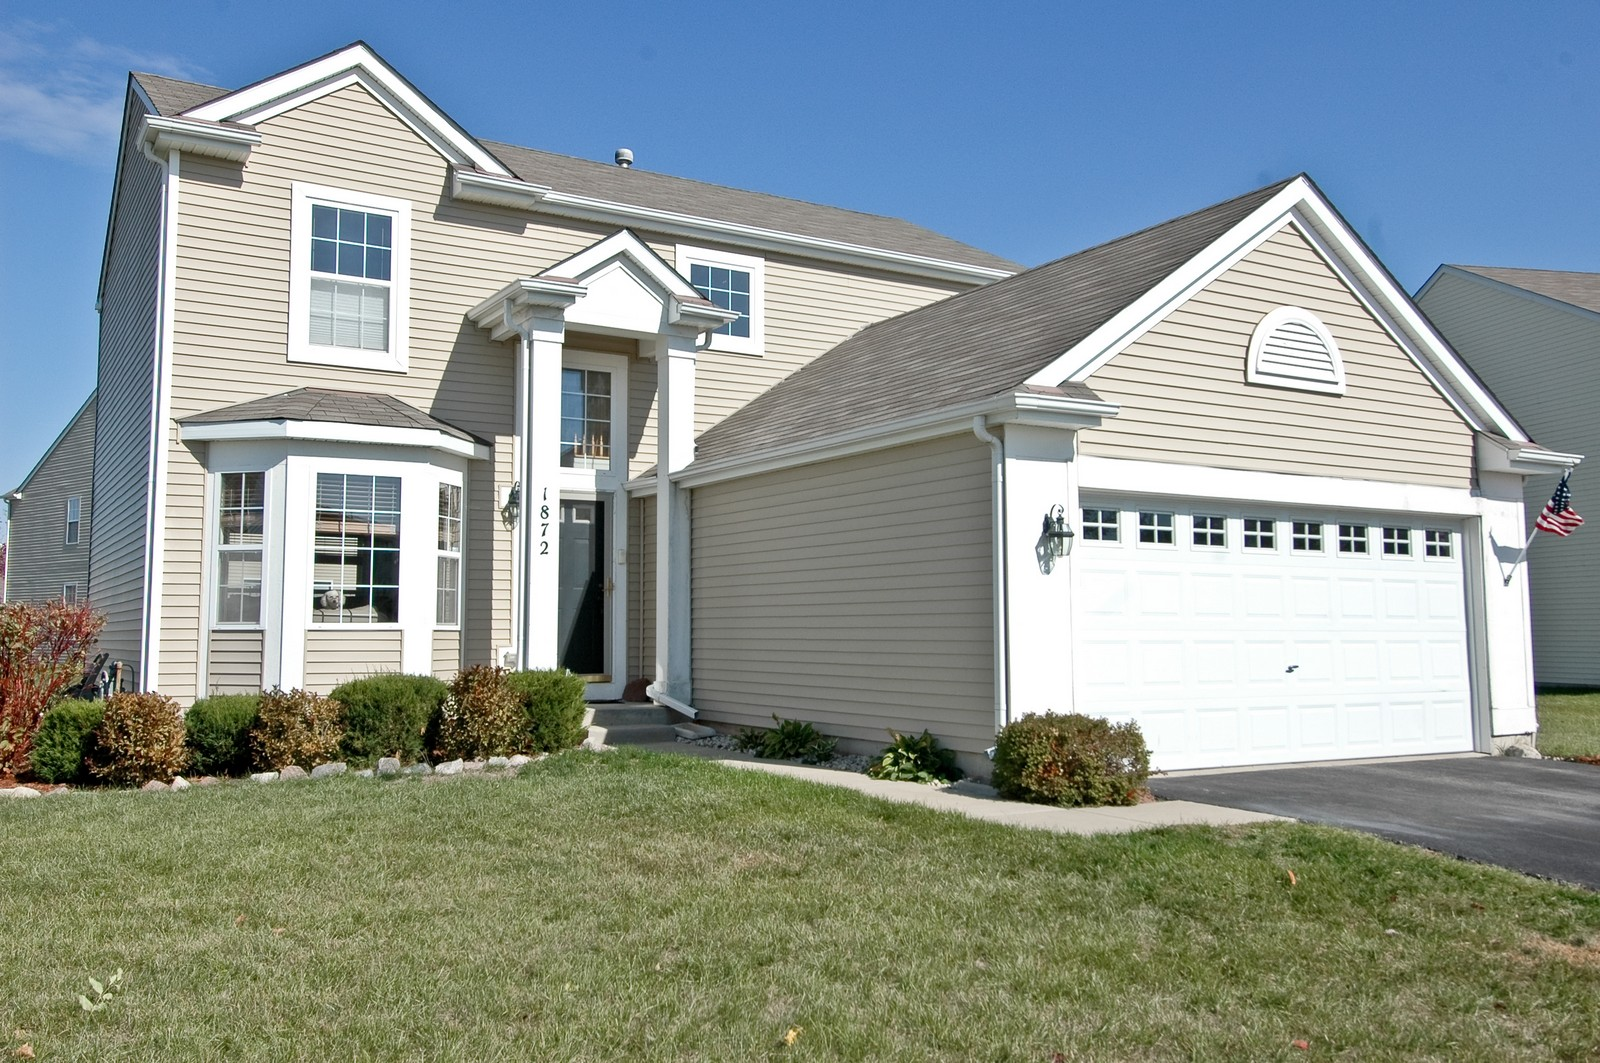 Real Estate Photography - 1872 Yasgur Dr, Woodstock, IL, 60098 - Front View